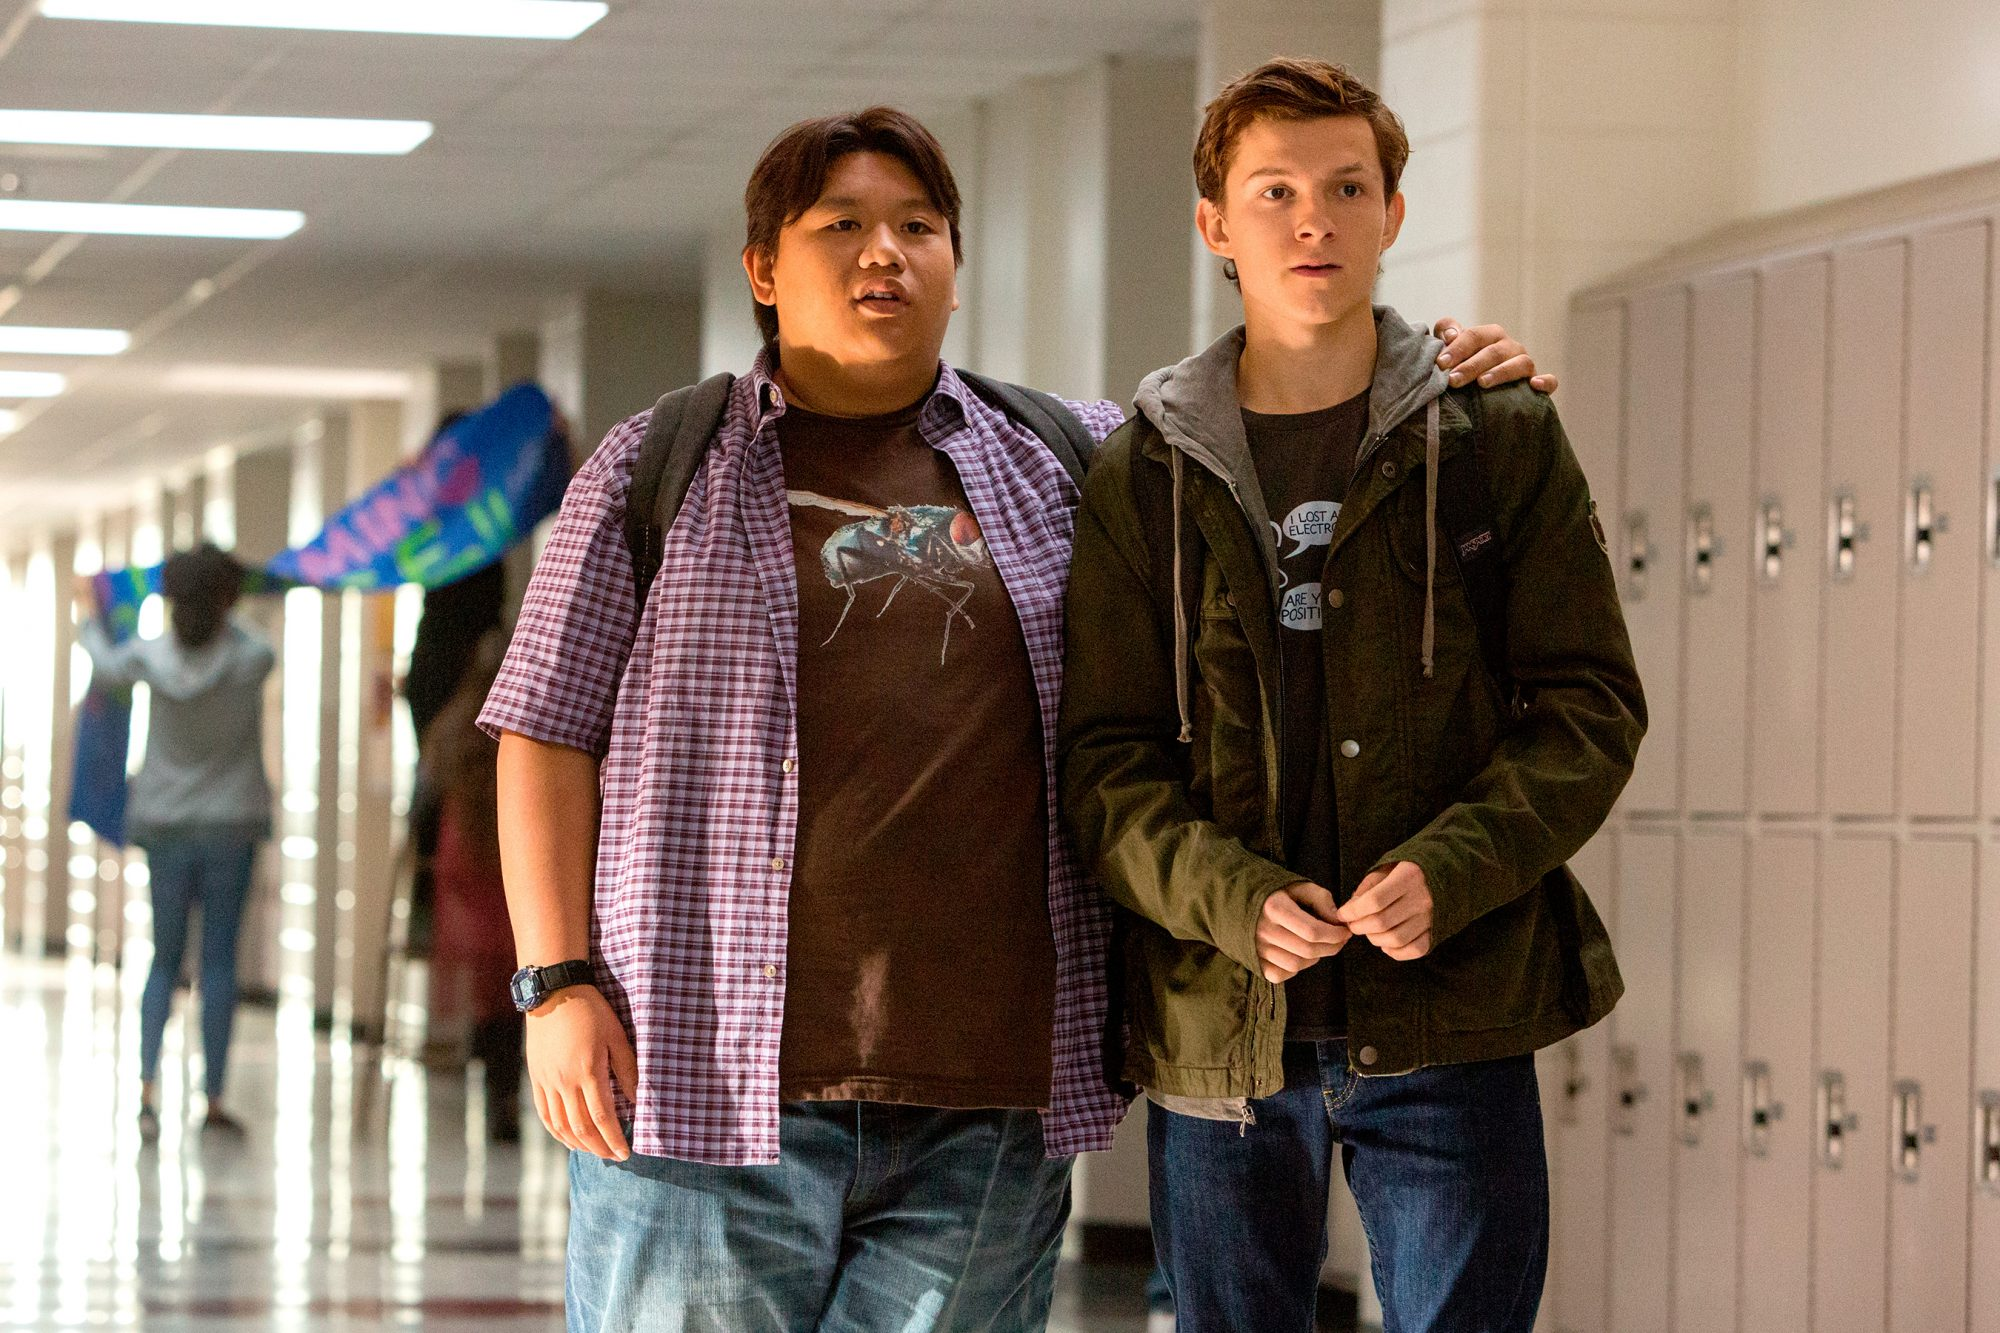 SPIDER-MAN: HOMECOMING (2017) Jacob Batalon (left) and Tom Holland